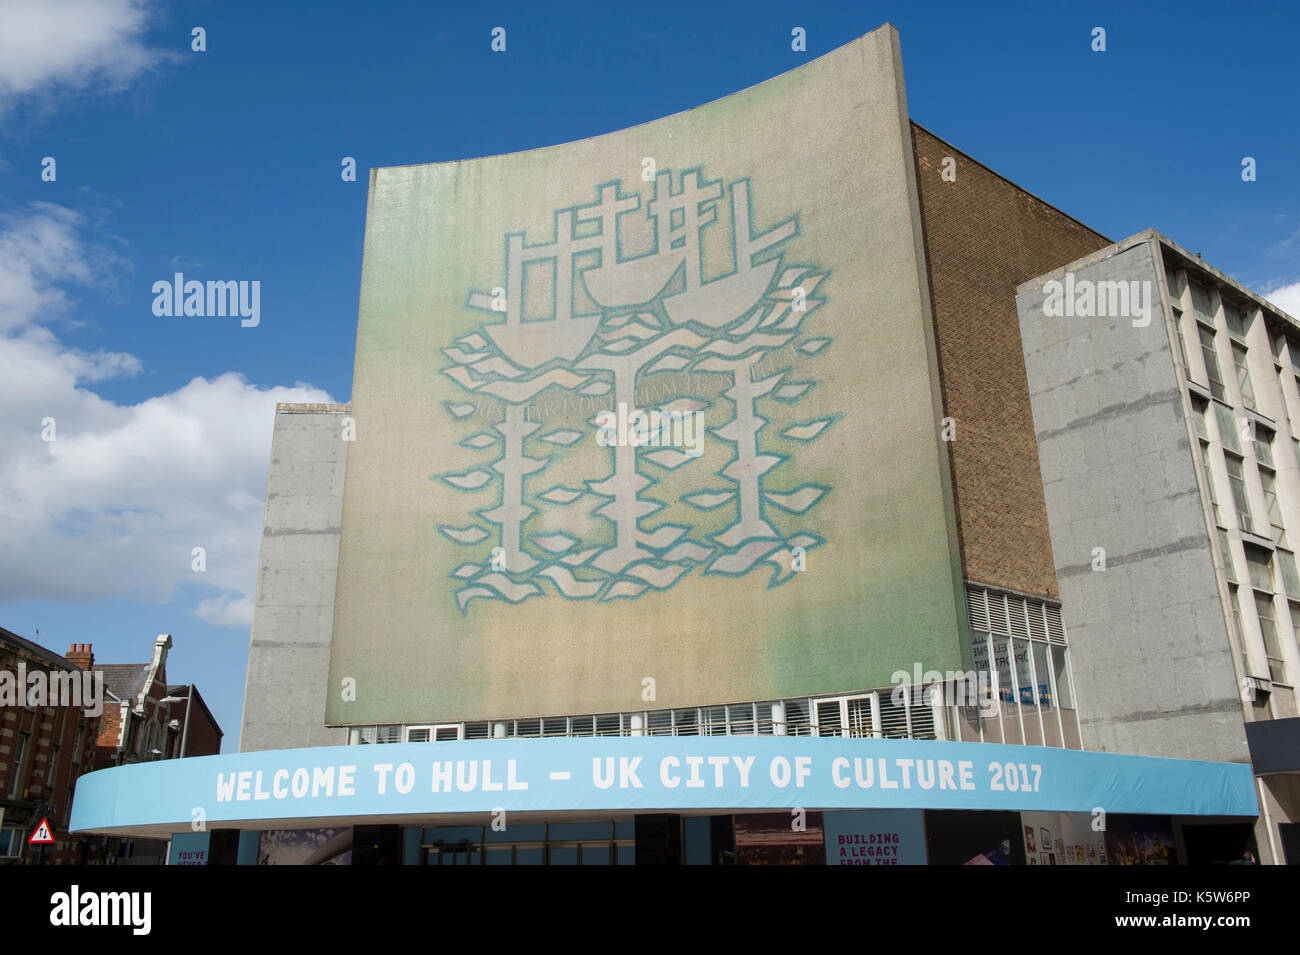 The Three Ships Mural Mosaic on the old Co-op/ BHS building in the centre of Kingston Upon Hull, UK City Of Culture - Stock Image